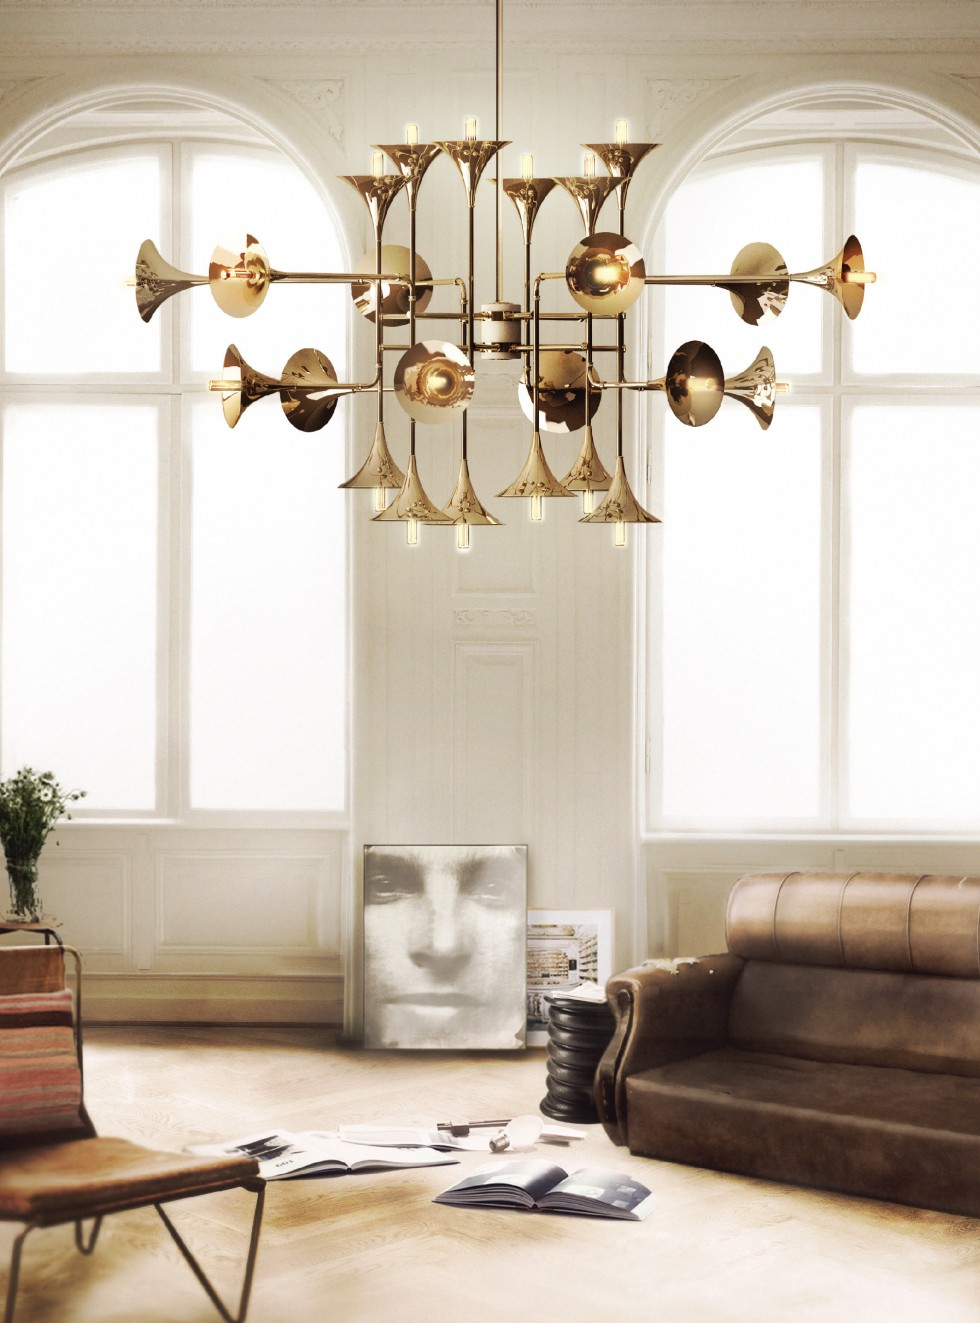 golden Luxury Rooms with lighting Golden Details Luxury Rooms with lighting Golden Details chandelier e1458554321833